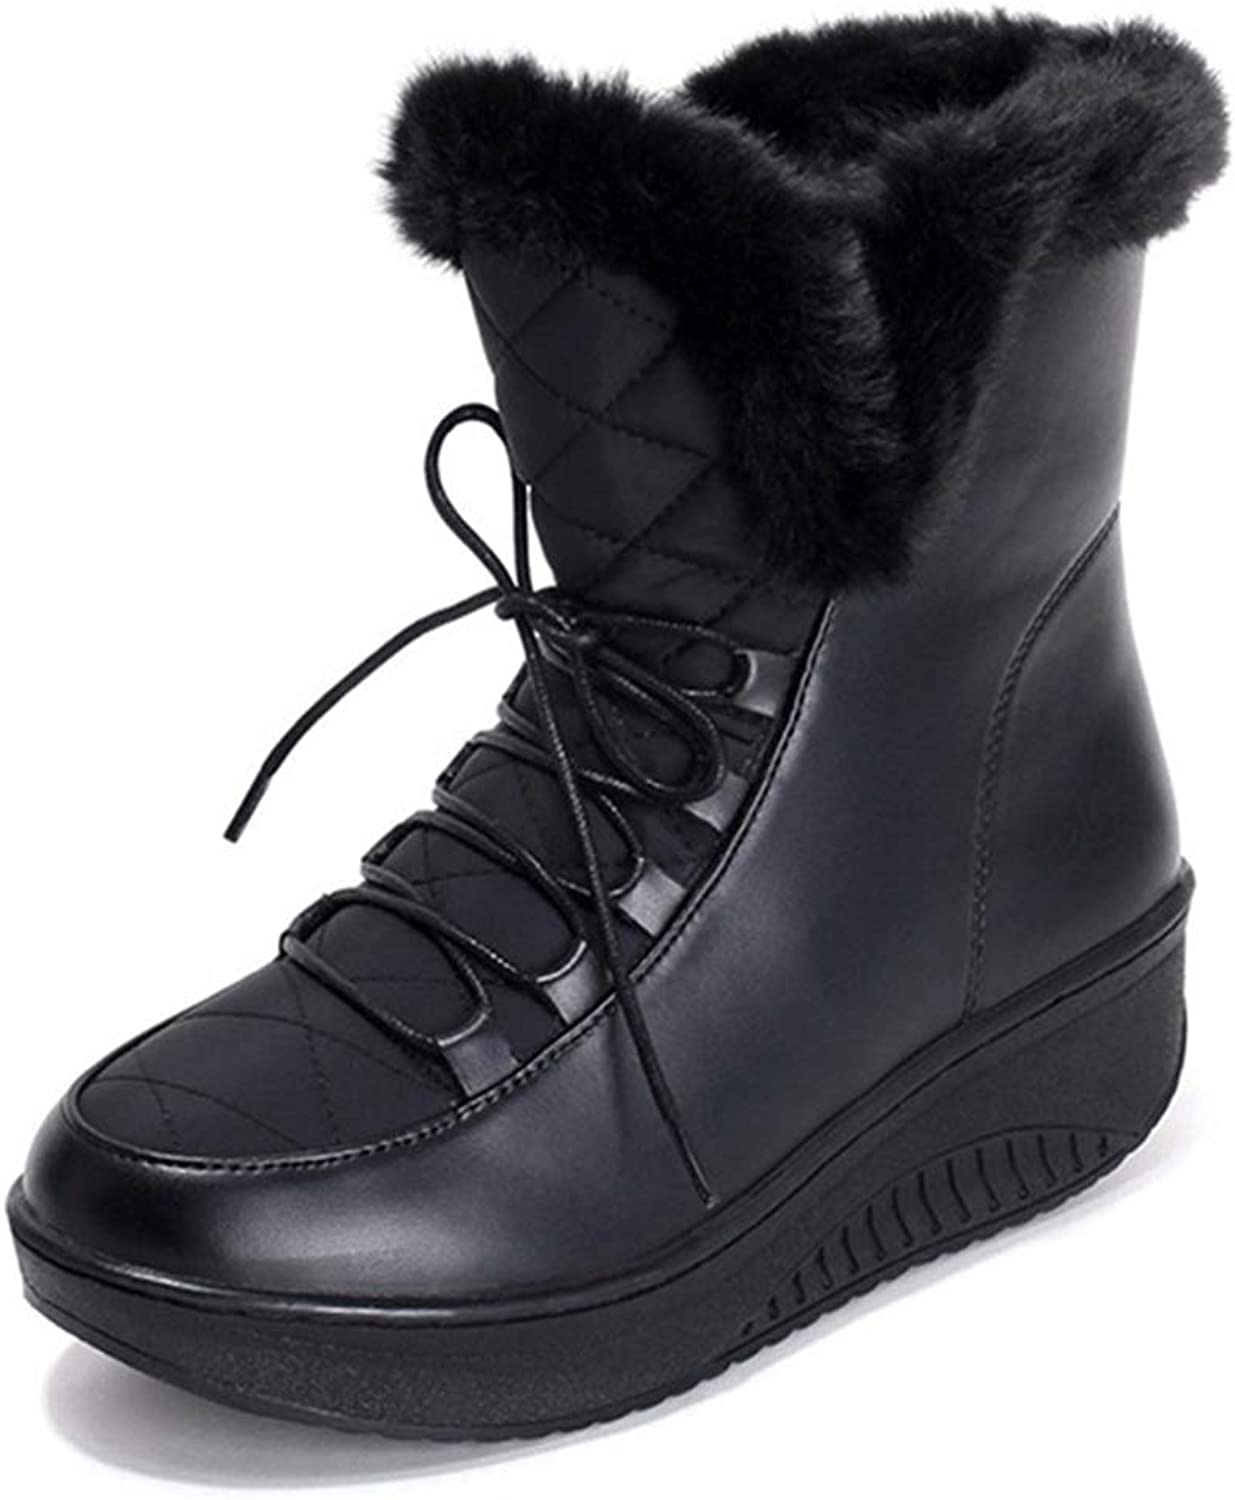 Winter Snow Boots Thick Fur Inside Platform shoes Woman Wedges Heel Women Ankle Boots Female shoes